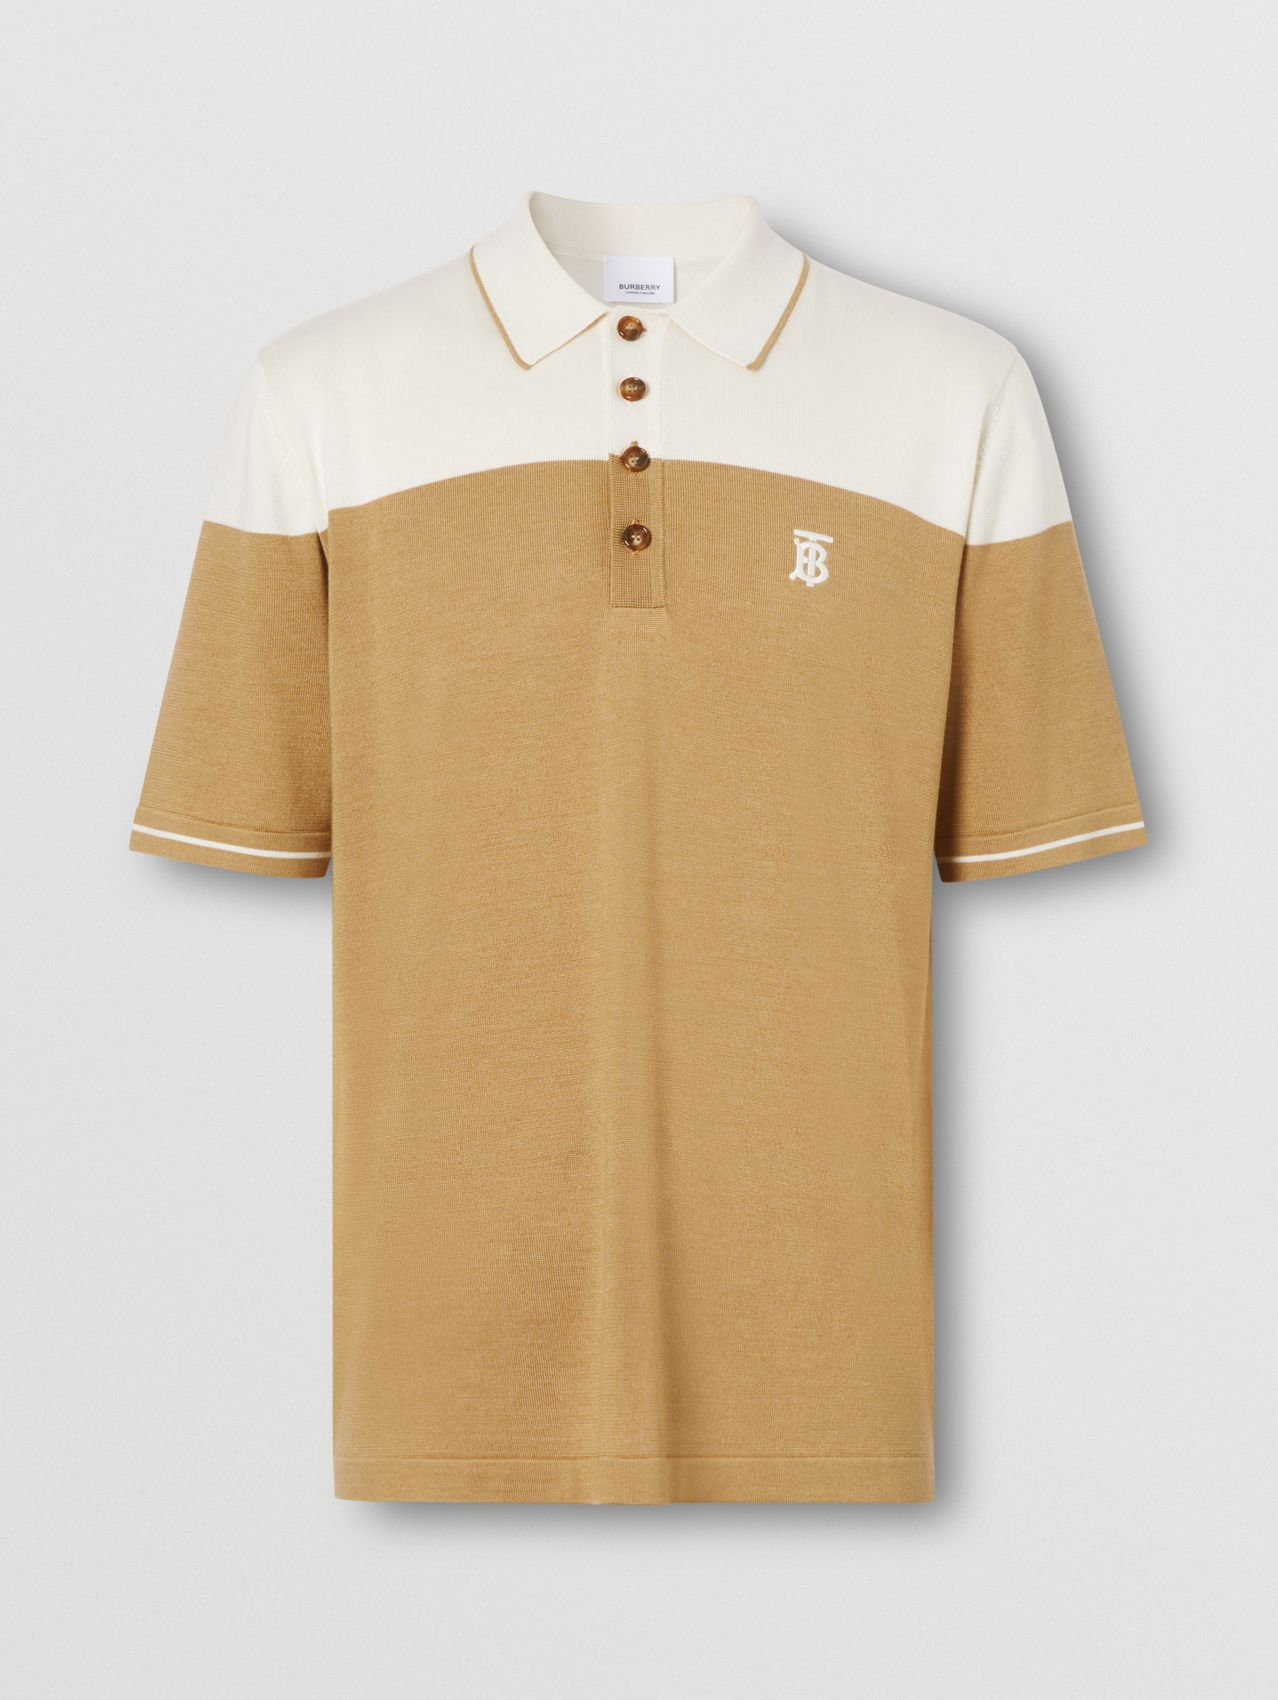 Monogram Motif Two-tone Silk Cashmere Polo Shirt (Archive Beige)